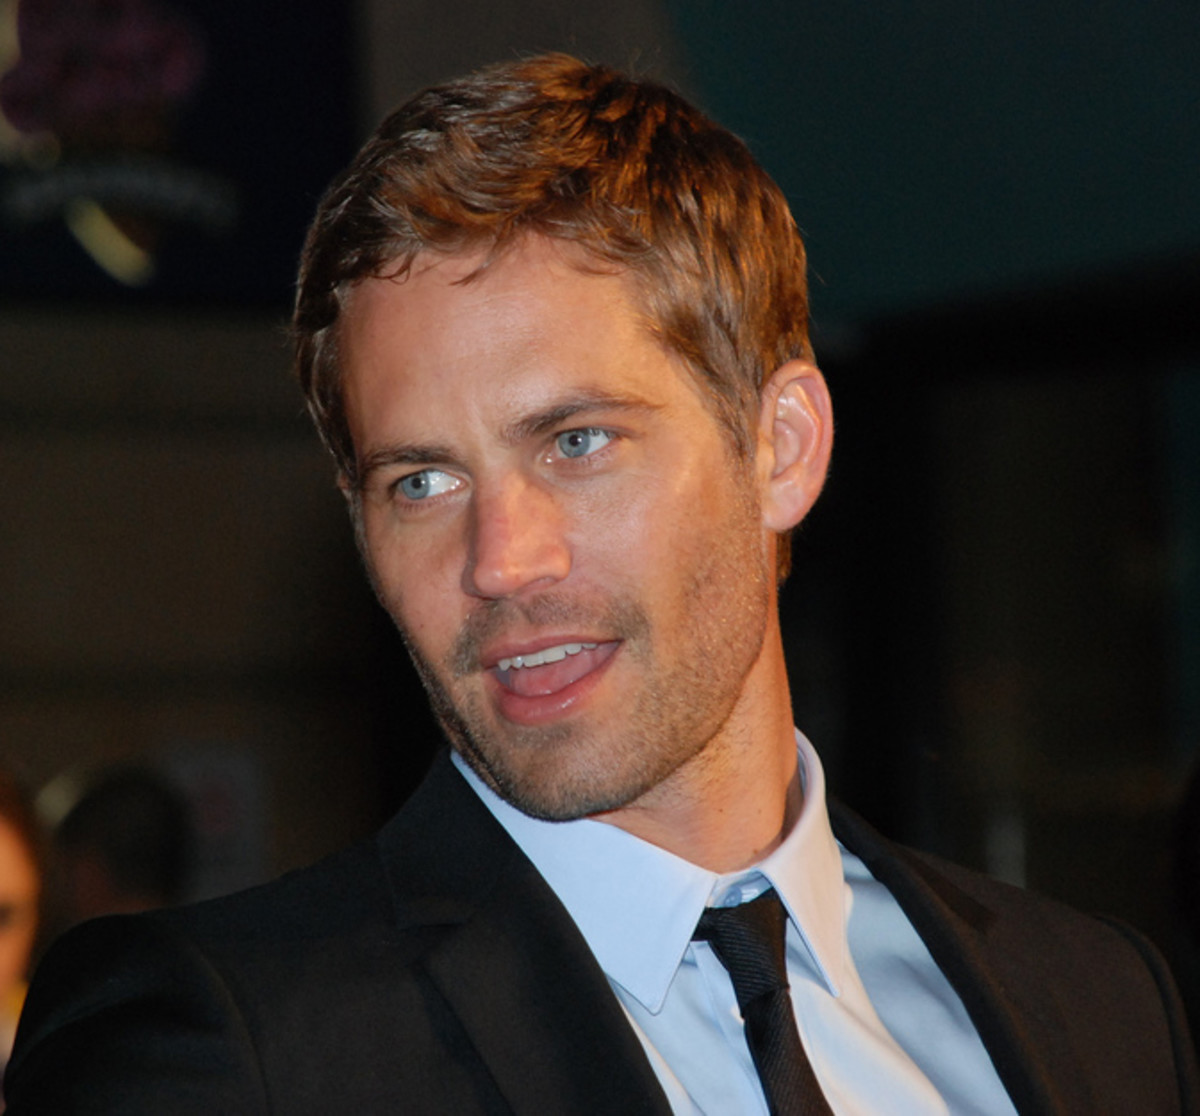 Why do People Love Paul Walker? 5 Reasons to Love The Fast and Furious Star